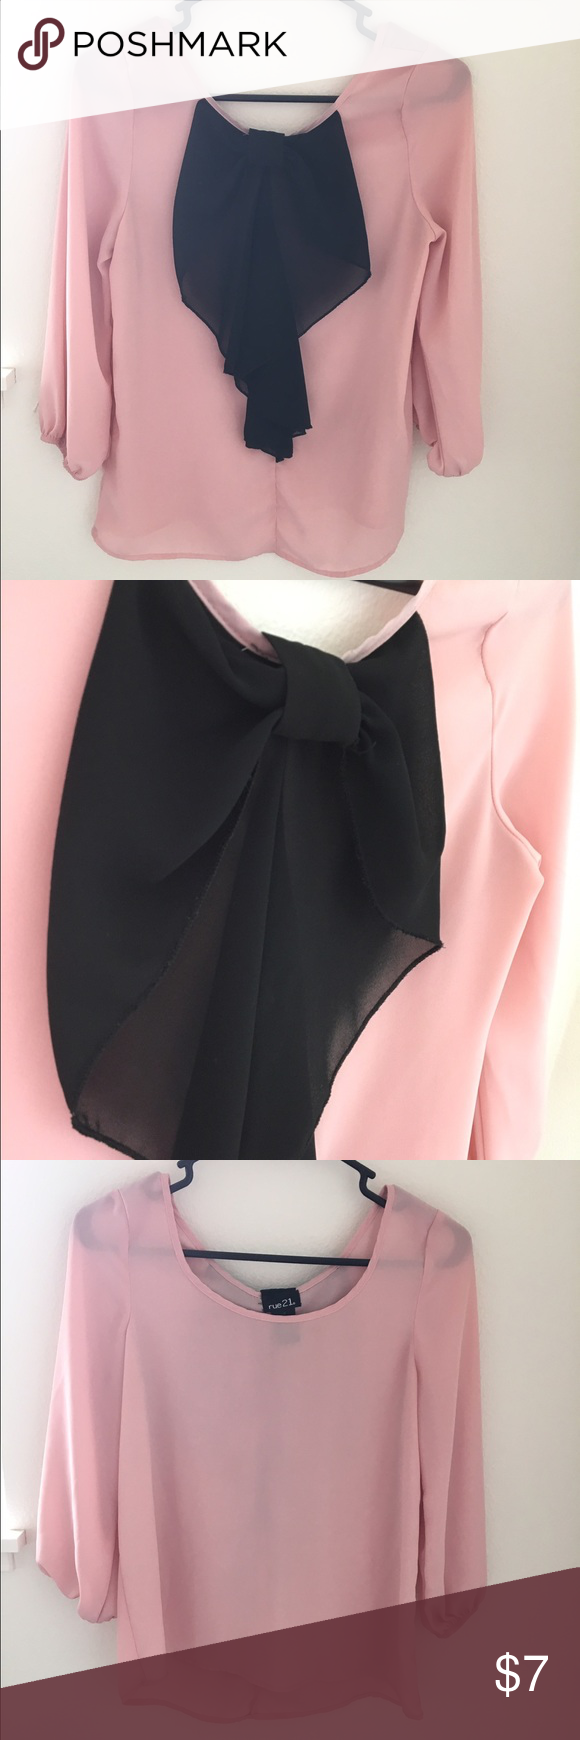 Black Bow Sheer Top  Adorable sheer top with a cute bow on the back! 10% off when  you bundle 2 items or more! Rue 21 Tops Blouses